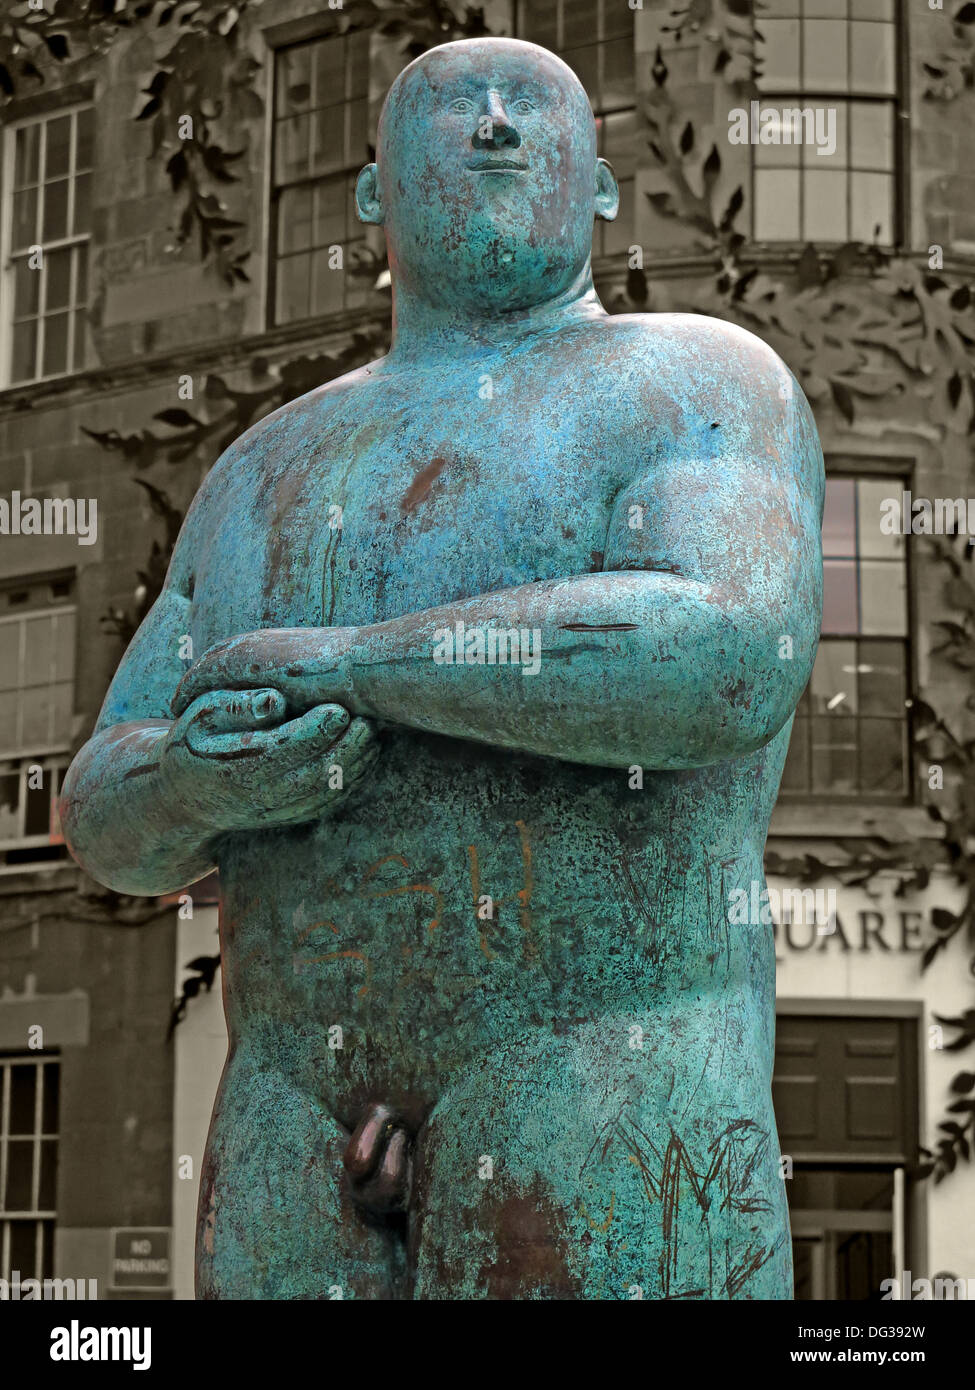 sq,sq.,centre,center,green,bronze,naked,man,Statue,outside,Princes,Square,shopping,Mall,48,Buchanan,Street,in,central,Glasgow,Scotland,UK,G1,3JN,Shona,Kinloch,As,proud,As,art,artist,work,works,Glaswegian,dick,willy,penis,private,parts,Private Parts,gotonysmith,Buy Pictures of,Buy Images Of